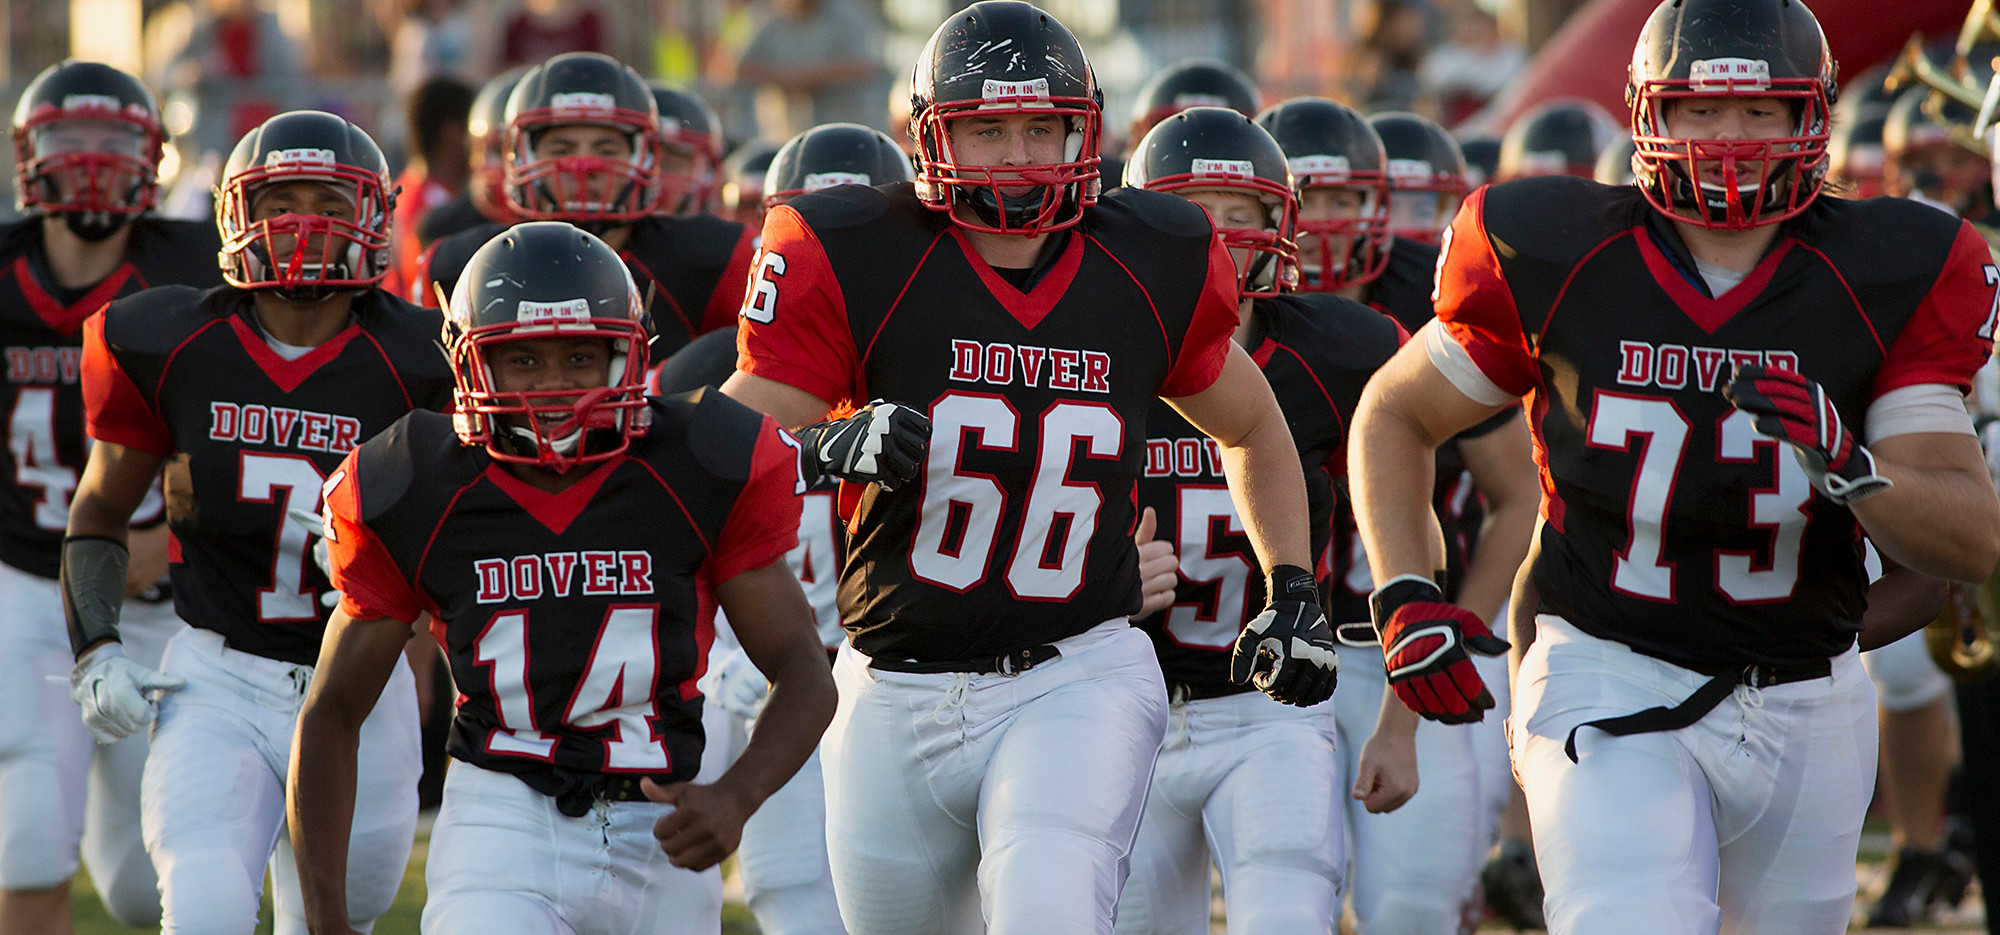 Dover's Tyrel Jones, Tyler Jacobson and Levi Murphy lead the Eagles onto the field for an early season game in 2014. The Eagles are coming off a 5-5 campaign, but have a new coach in Wayne Snelbaker with a mix of experience and promising youth. JOHN WHITEHEAD for the Daily Record/Sunday News